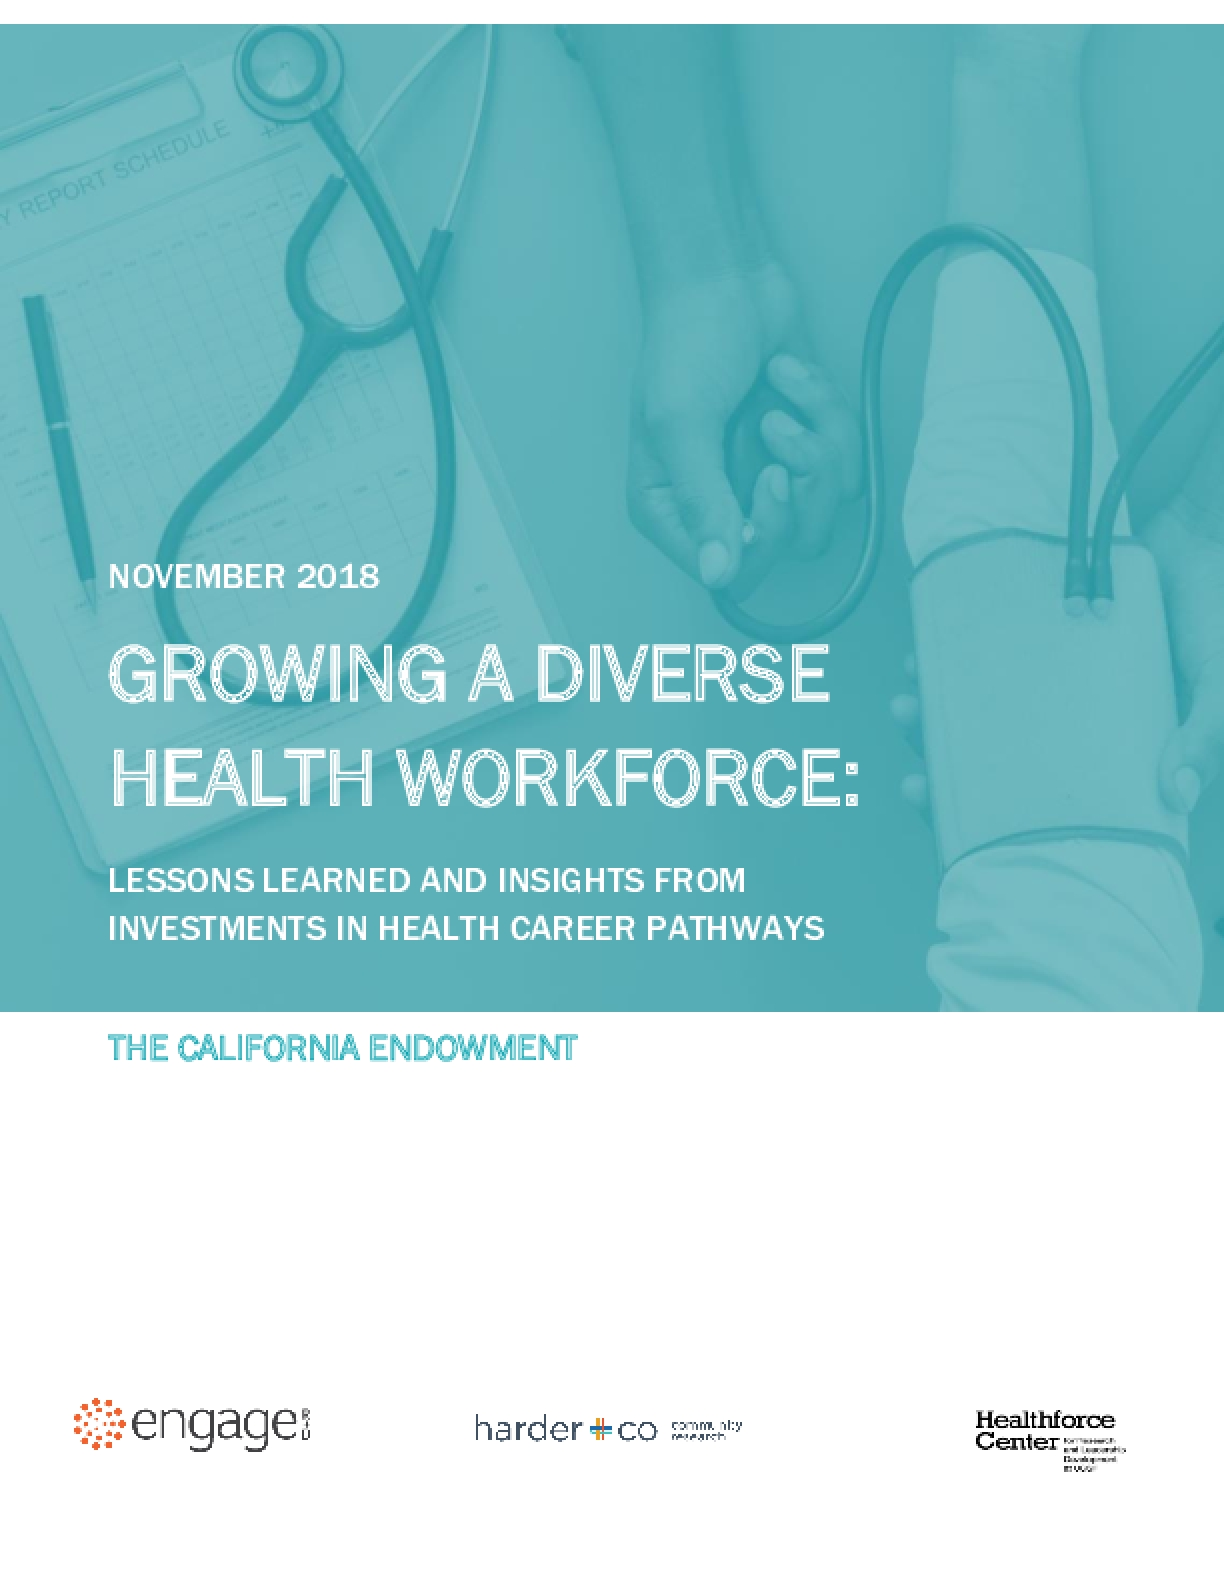 Growing a Diverse Health Workforce: Lessons Learned and Insights from Investments in Health Career Pathways